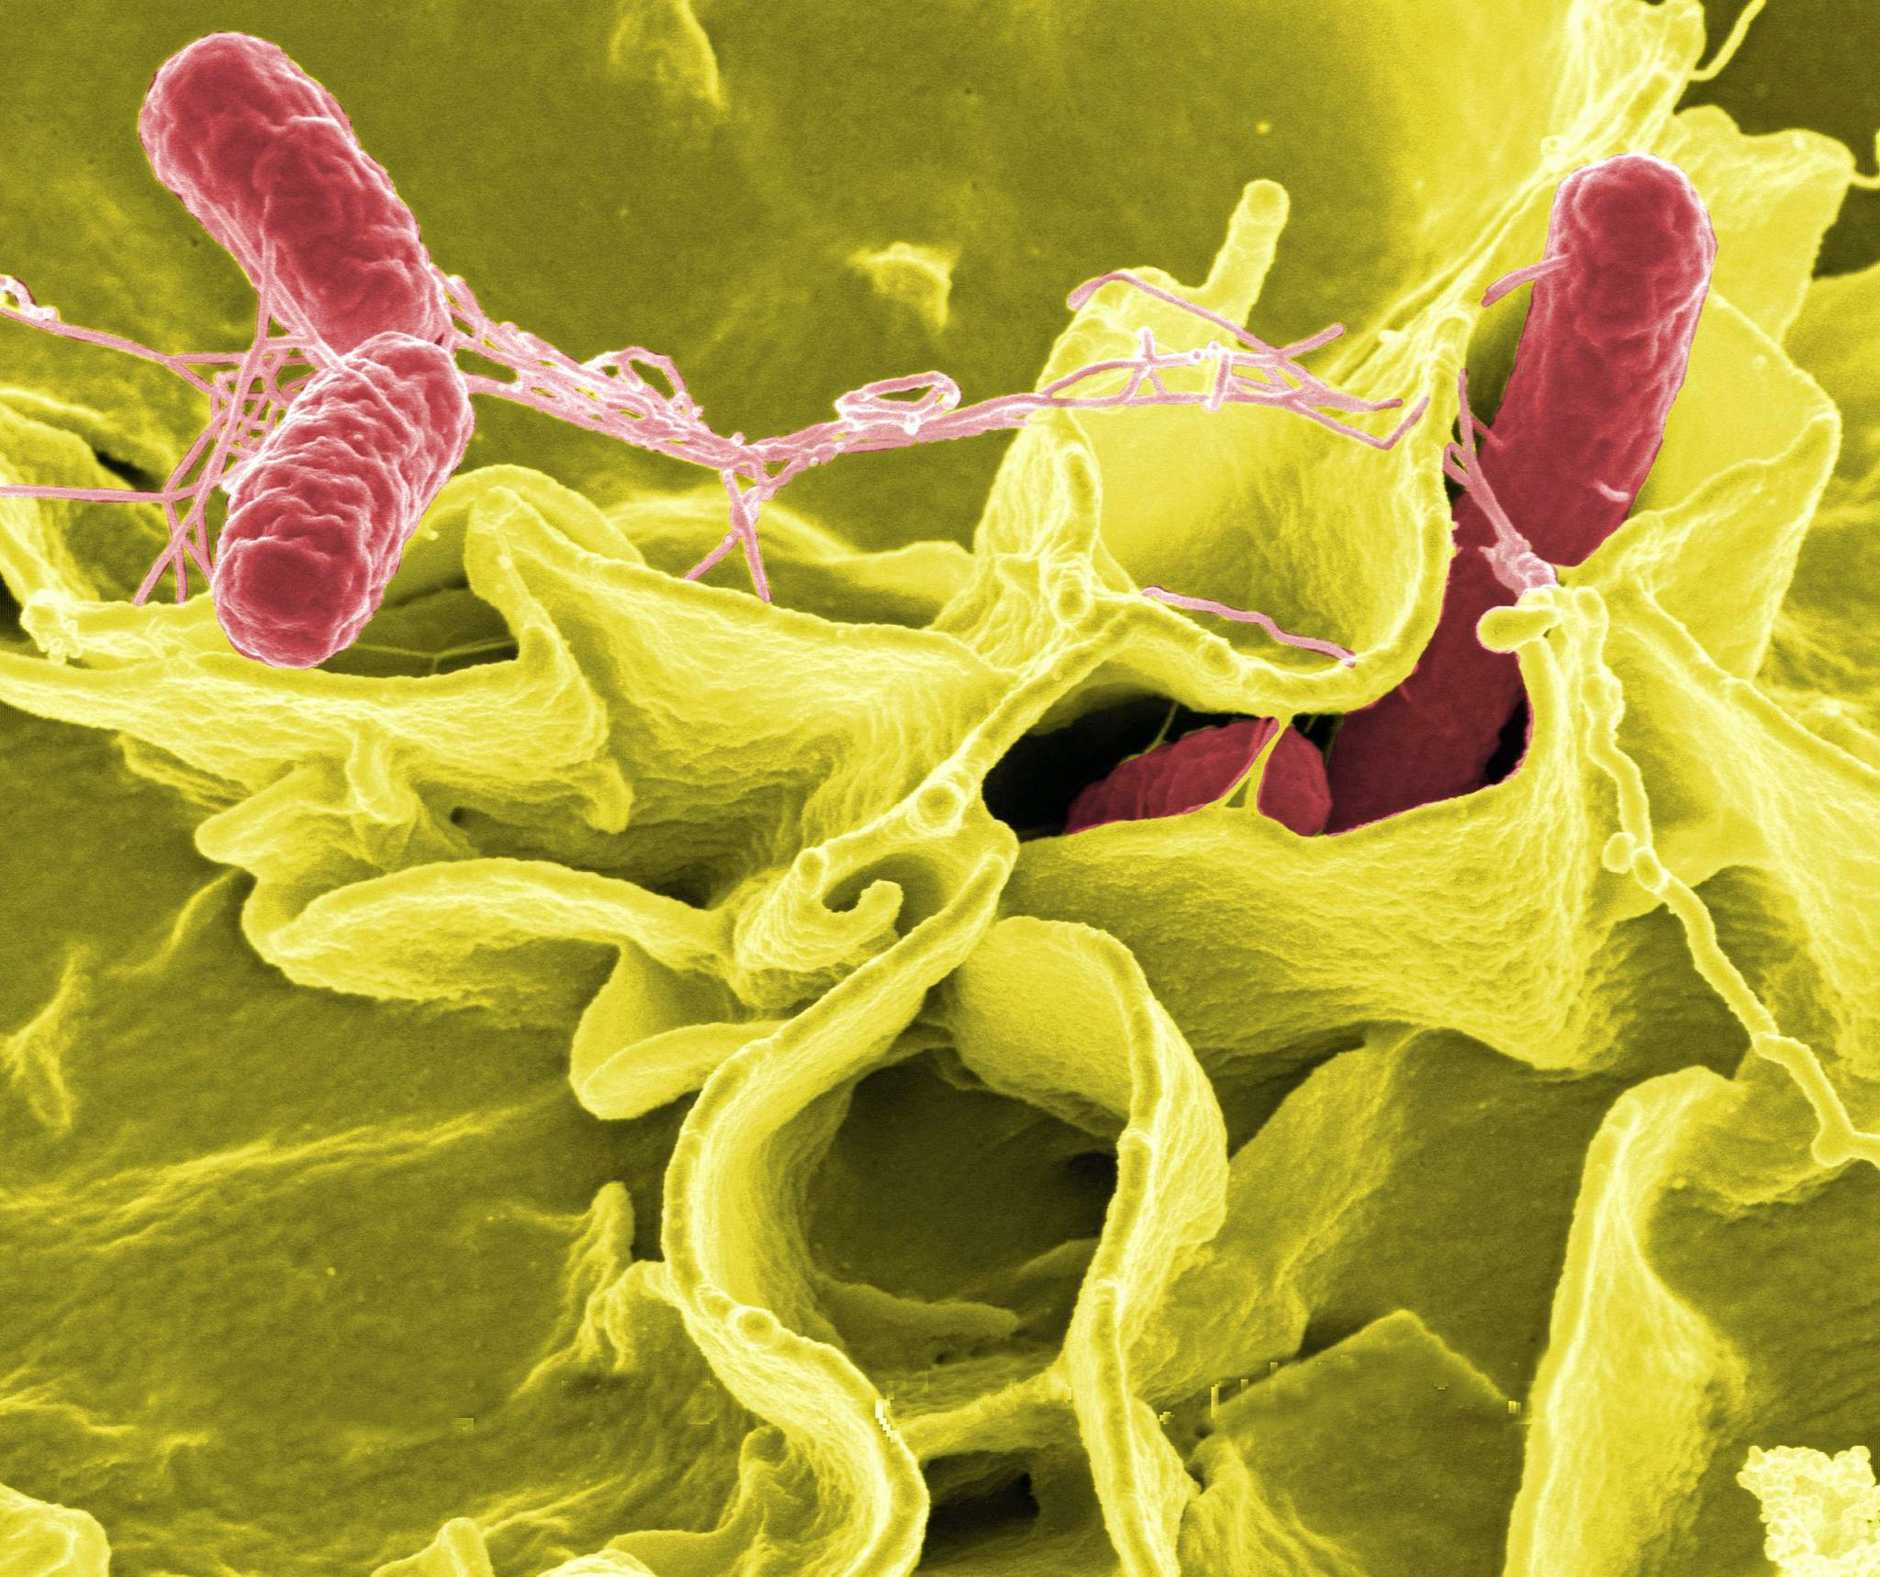 Colour-enhanced scanning electron micrograph showing Salmonella typhimurium (red) invading cultured human cells.